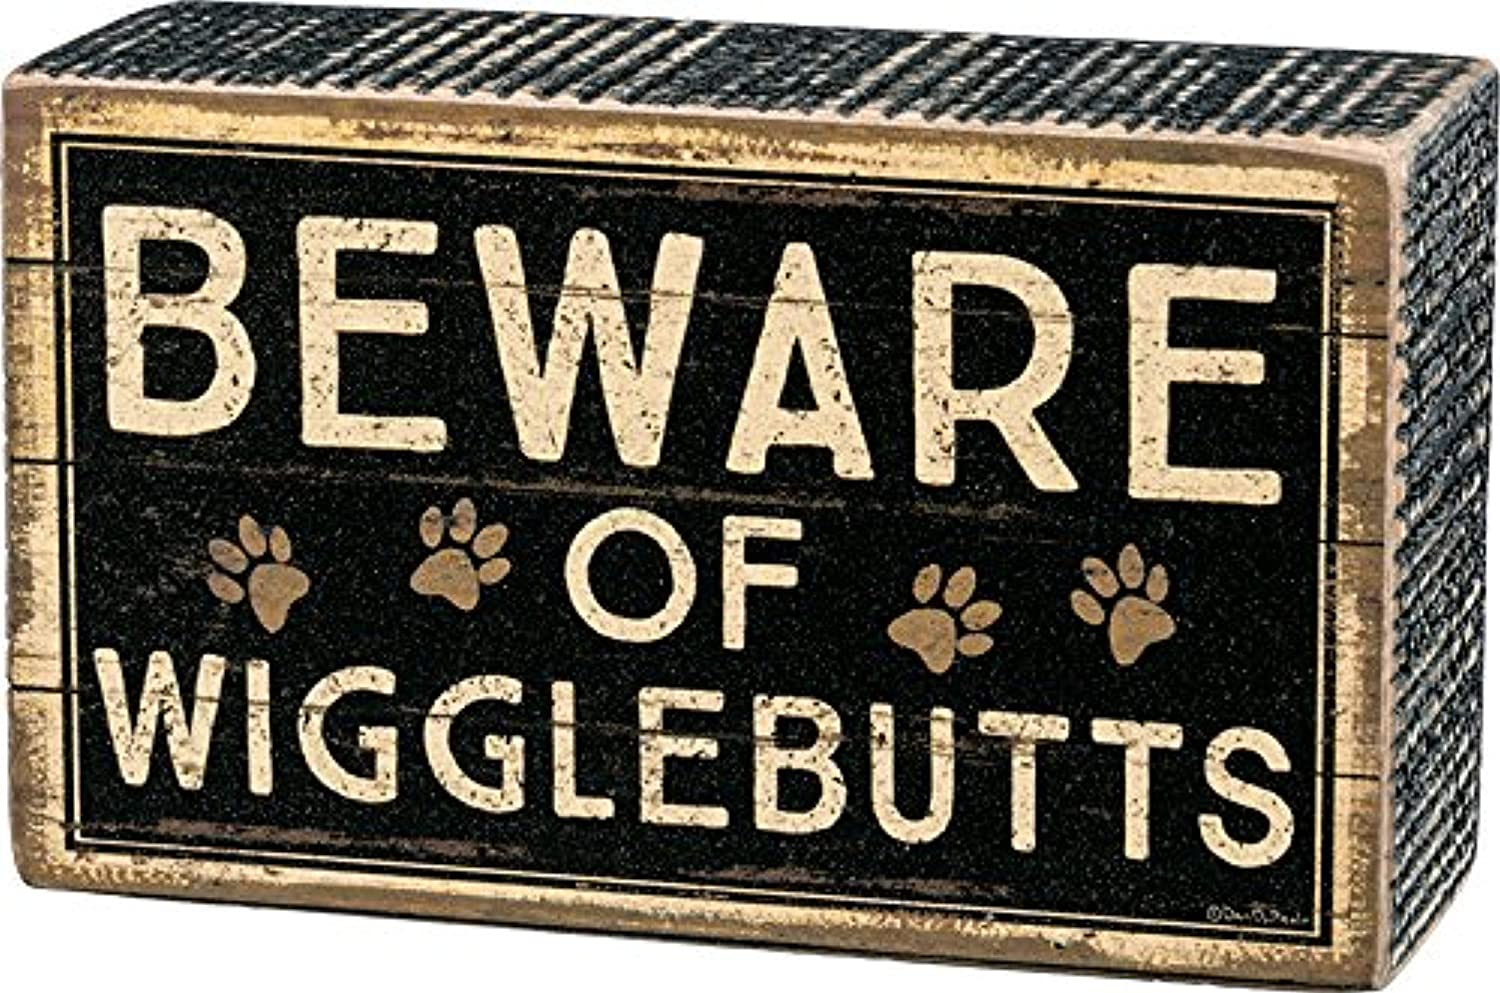 """Beware of Wigglebutts"" - Box Sign from Primitives by Kathy, Brown Black, 5"" x 3"""